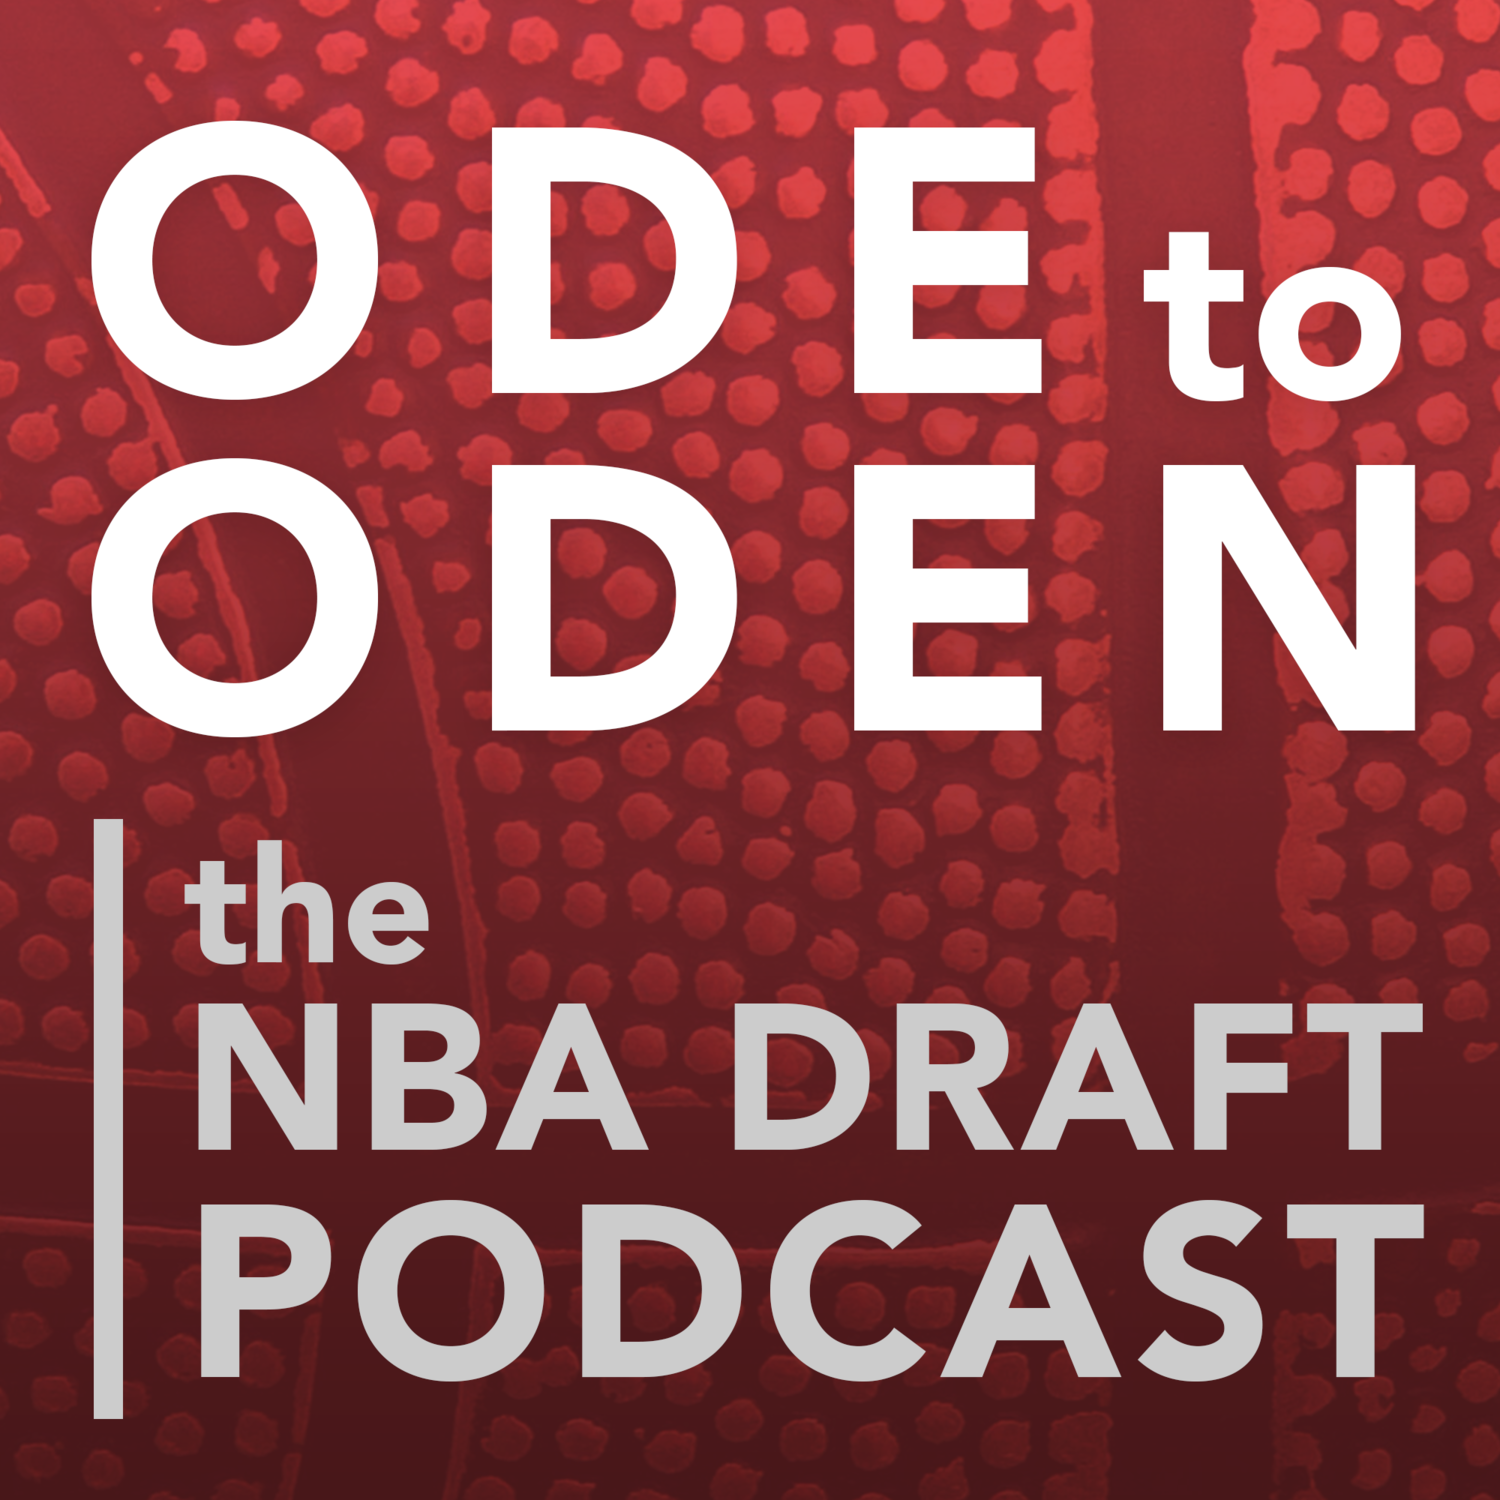 Ode to Oden: the NBA Draft Podcast